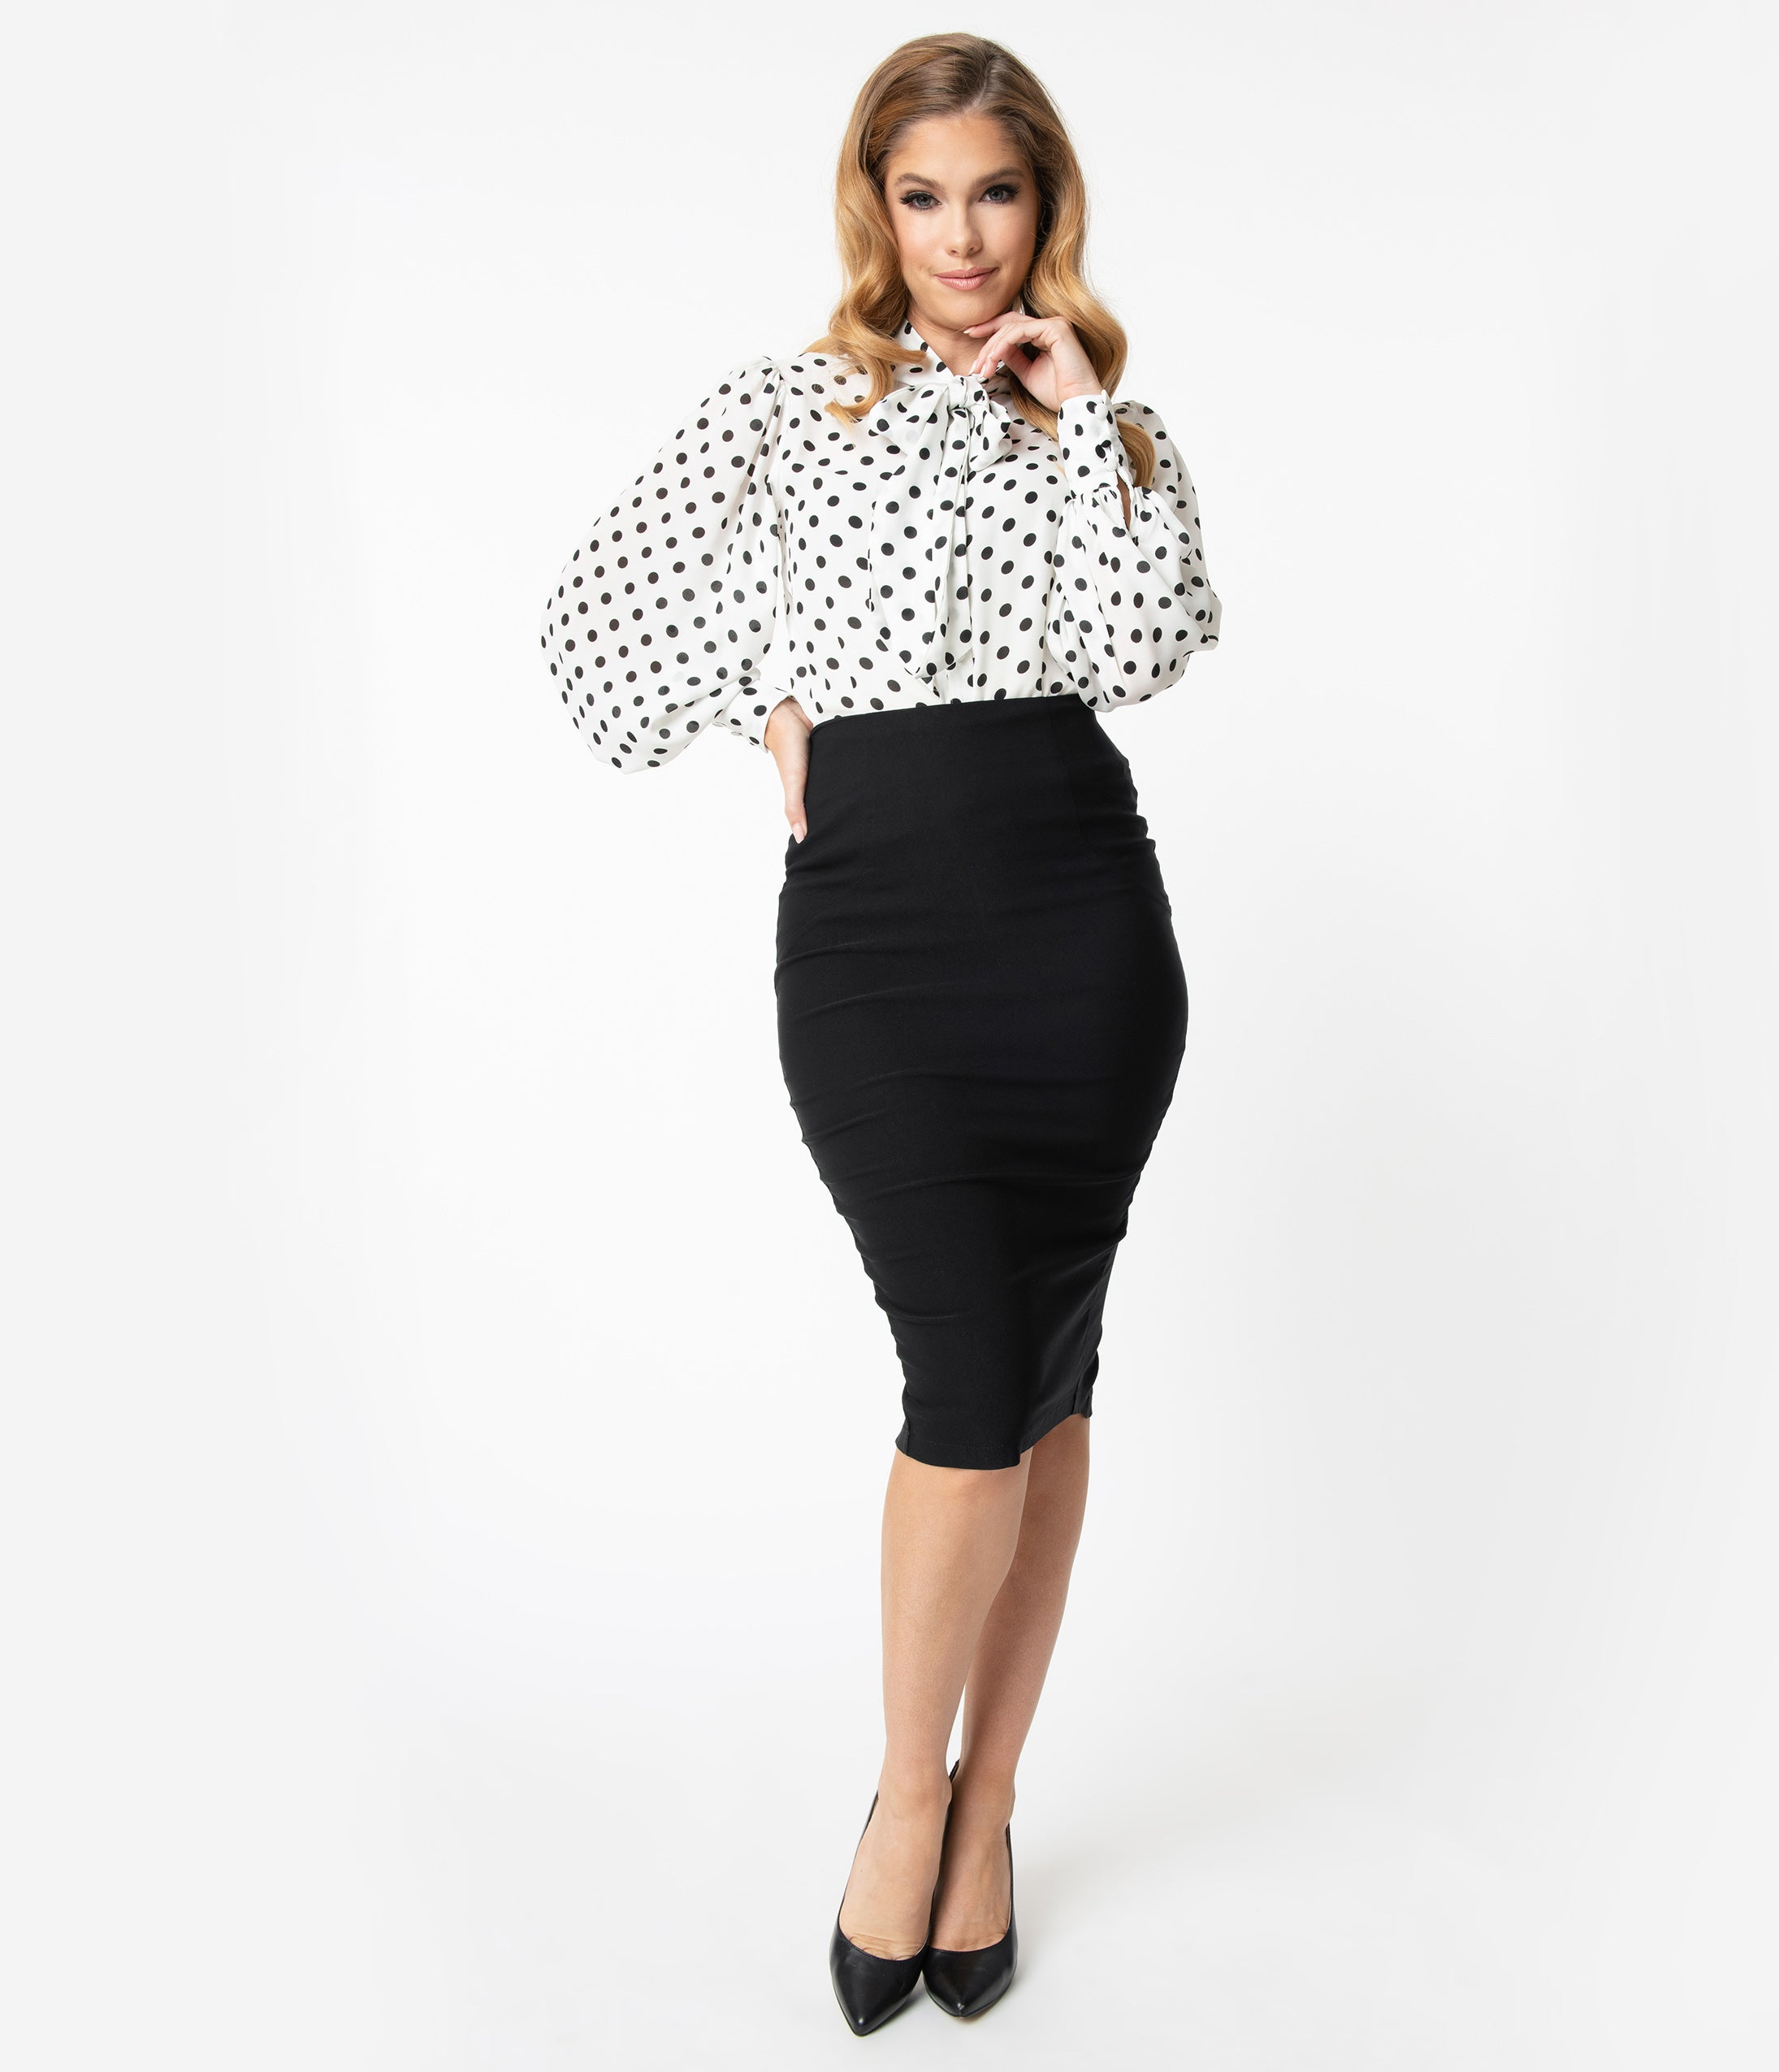 1950s Style Clothing & Fashion Unique Vintage Black Stretch High Waist Tracy Wiggle Skirt $48.00 AT vintagedancer.com